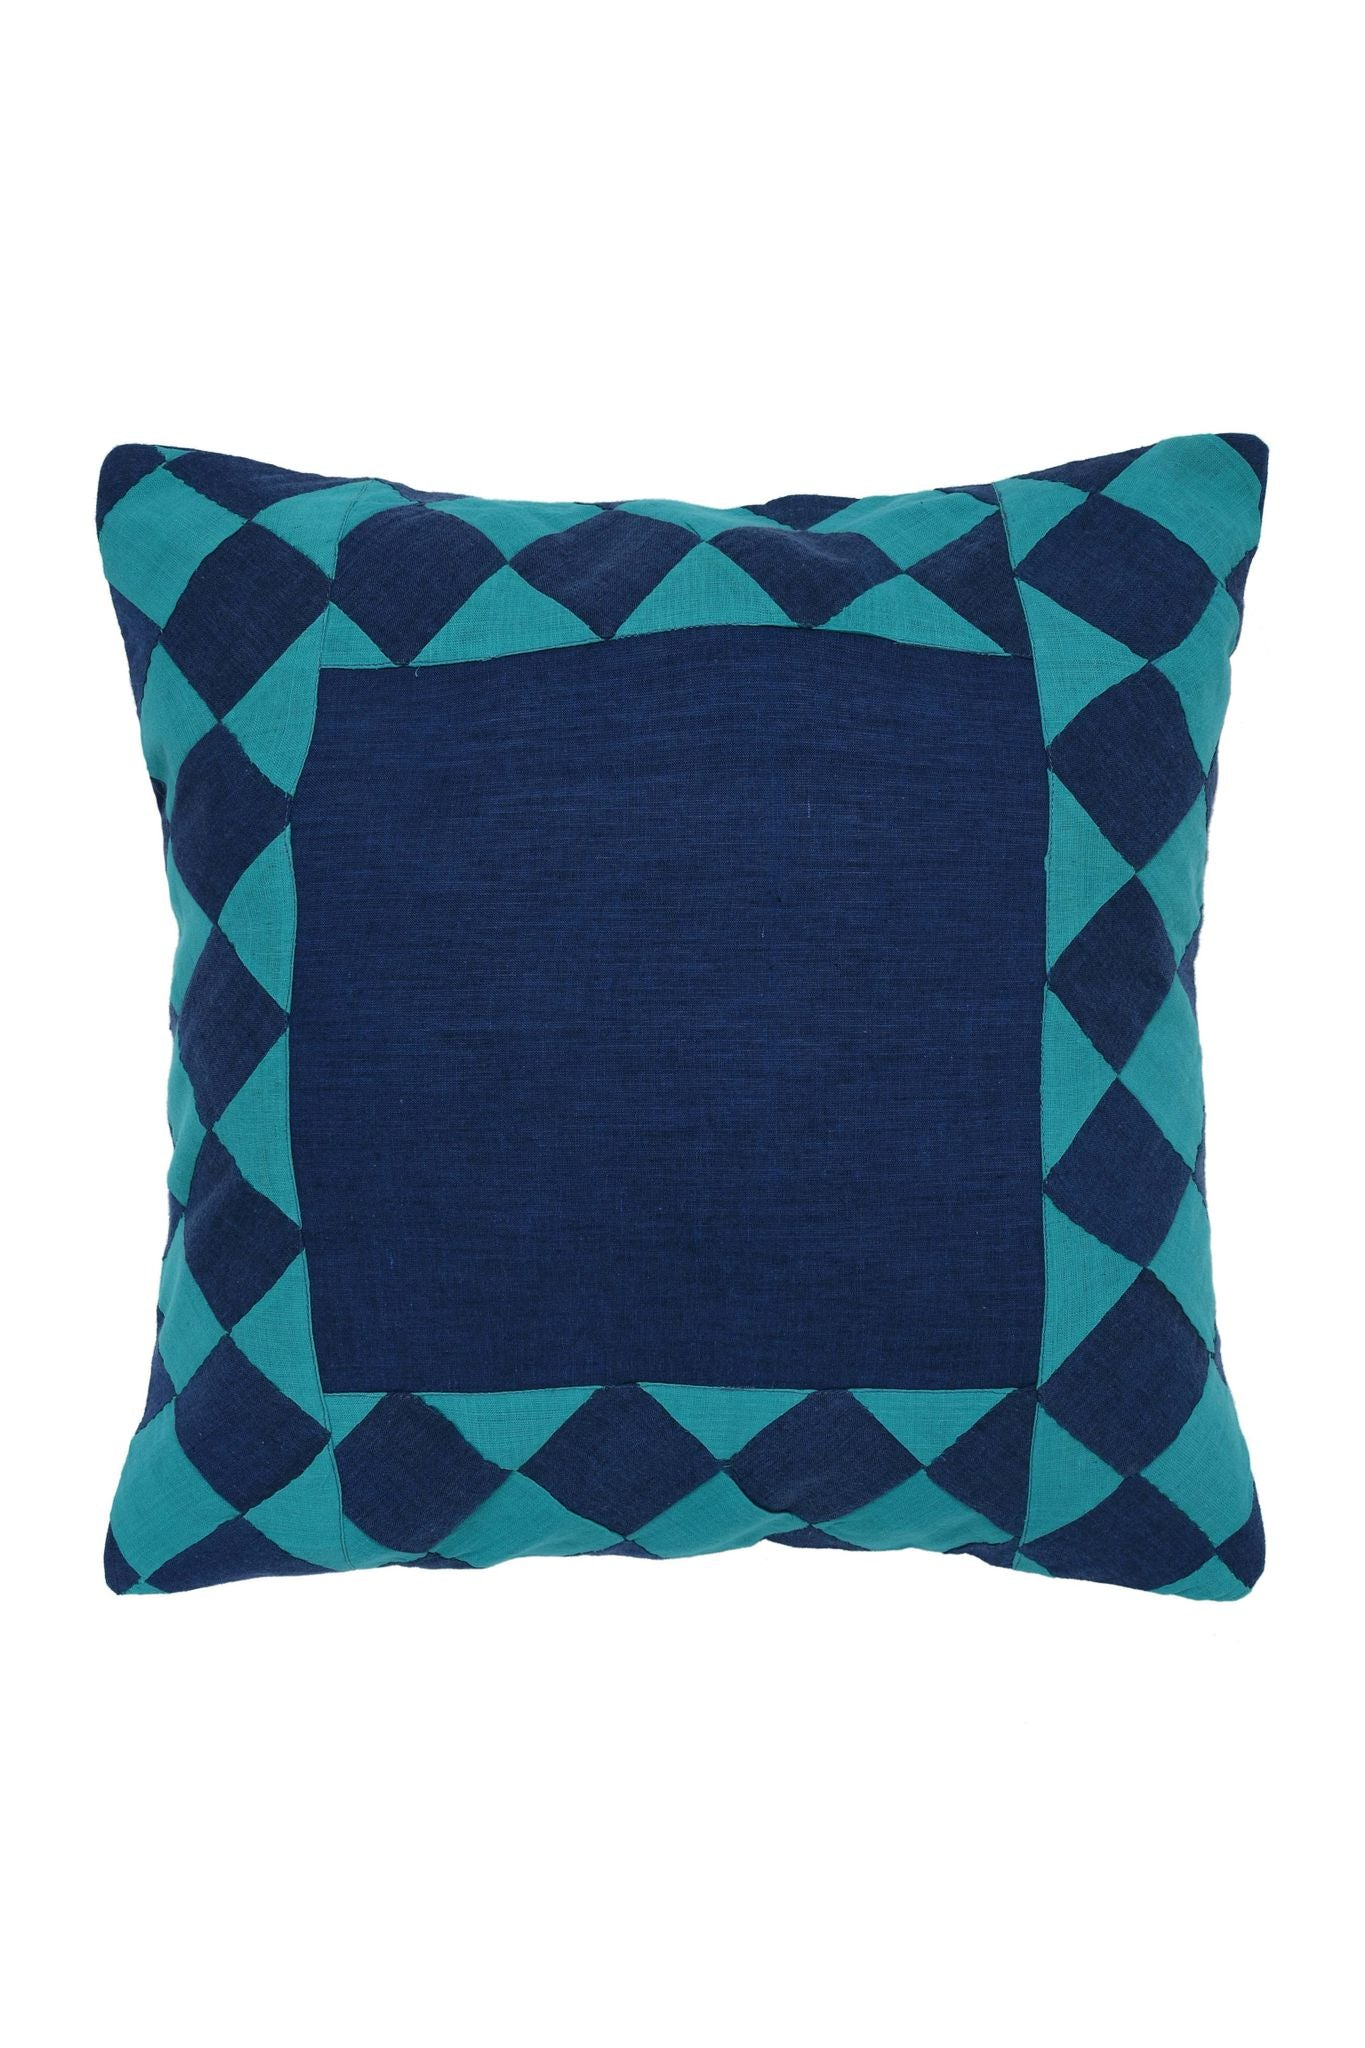 Ralli Work Blue and Turquoise Cushion Cover